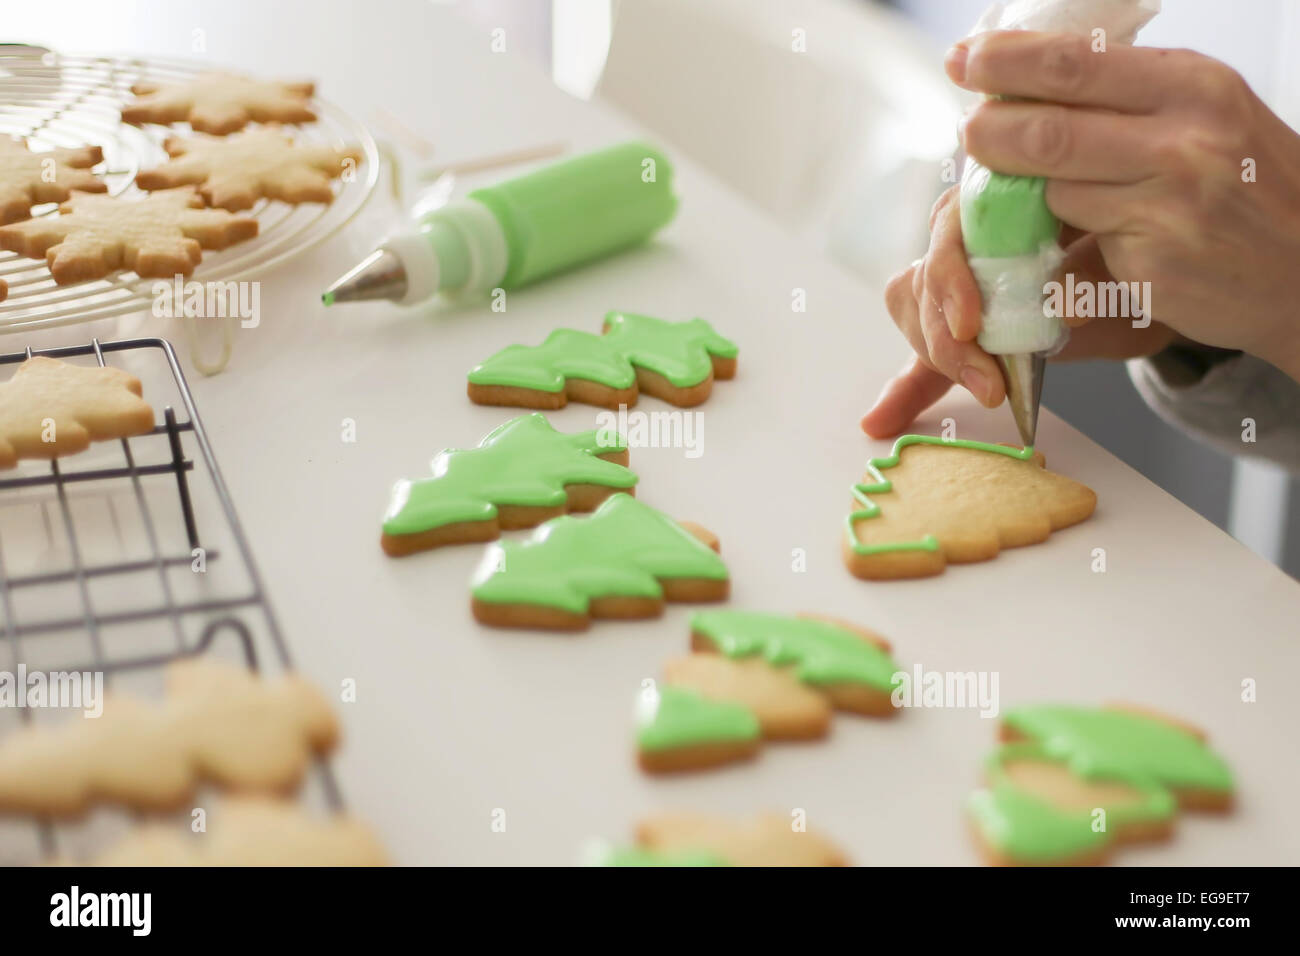 Woman decorating cookies with green colored icing - Stock Image